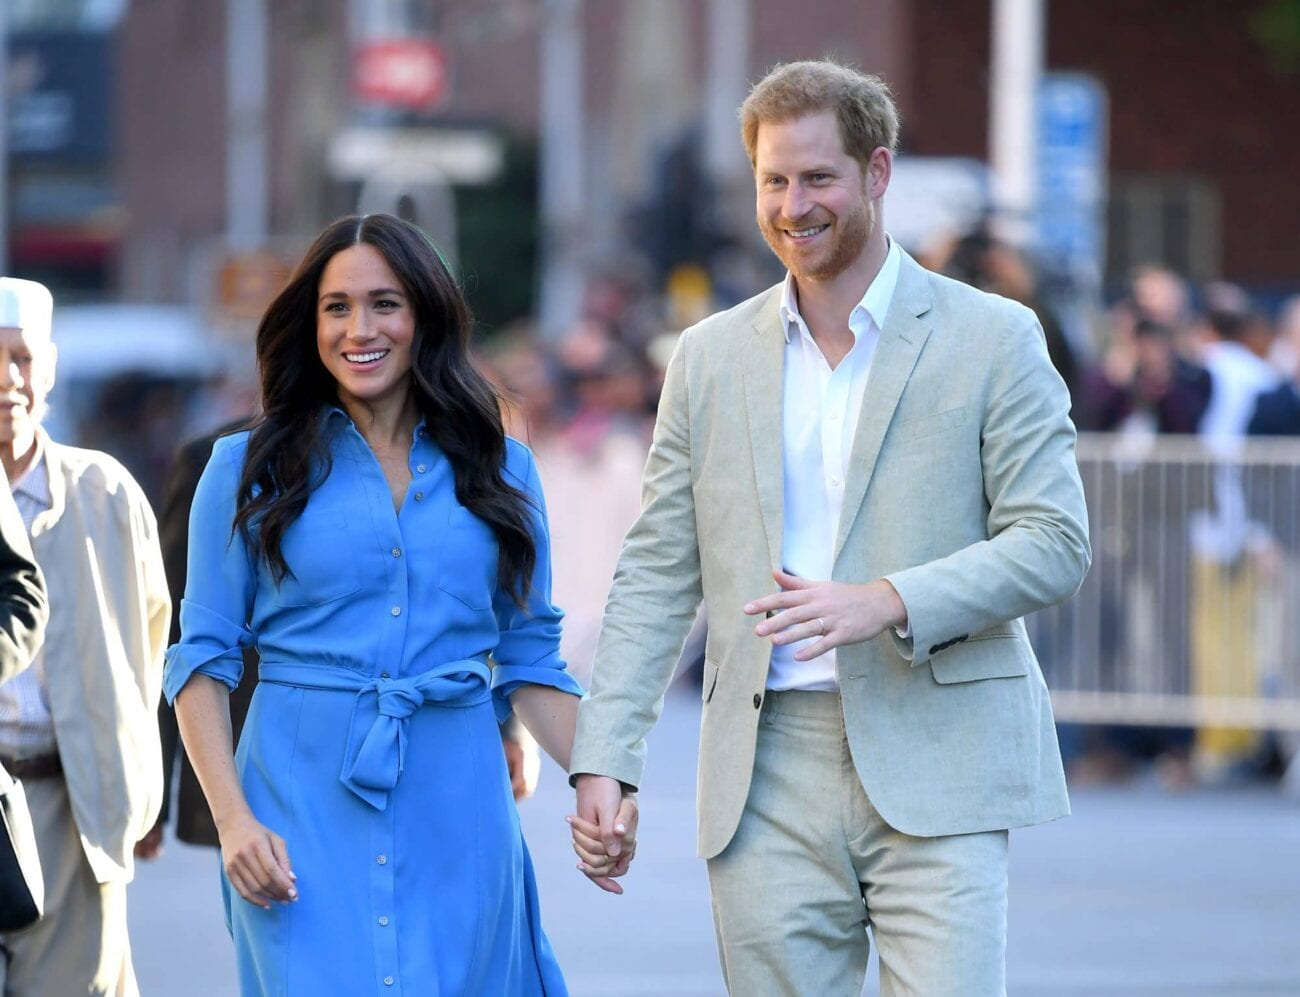 The royal life for Prince Harry and Meghan Markle has been full of rumors, cascades, and tumult. Take a look inside their relationship here.